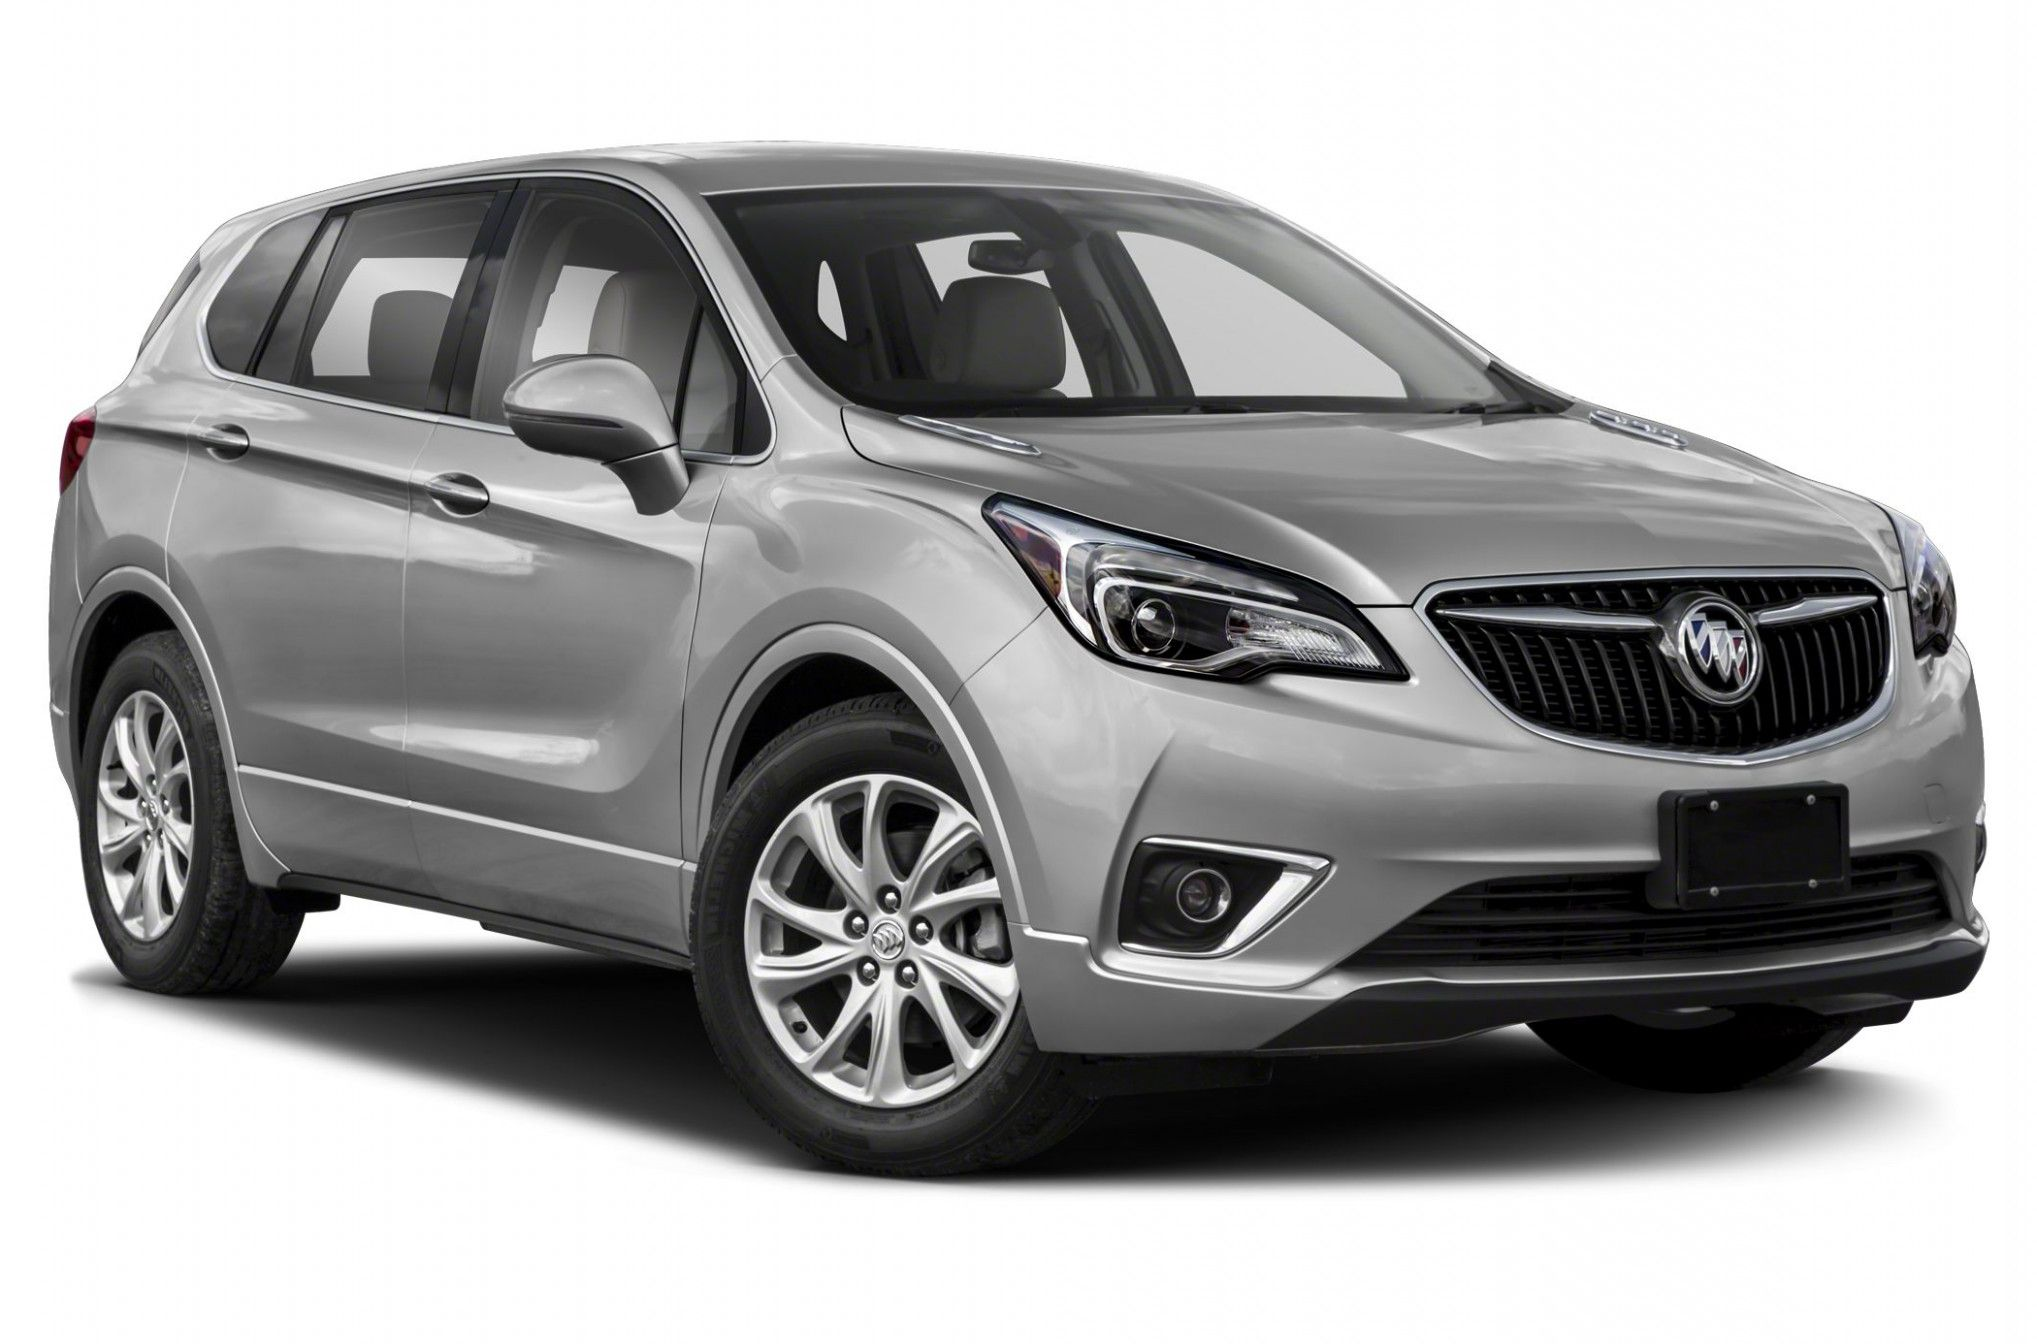 Attending 2020 Buick Envision Specs Can Be A Disaster If You Forget These Ten Rules Buick Envision Volvo Hybrid Buick